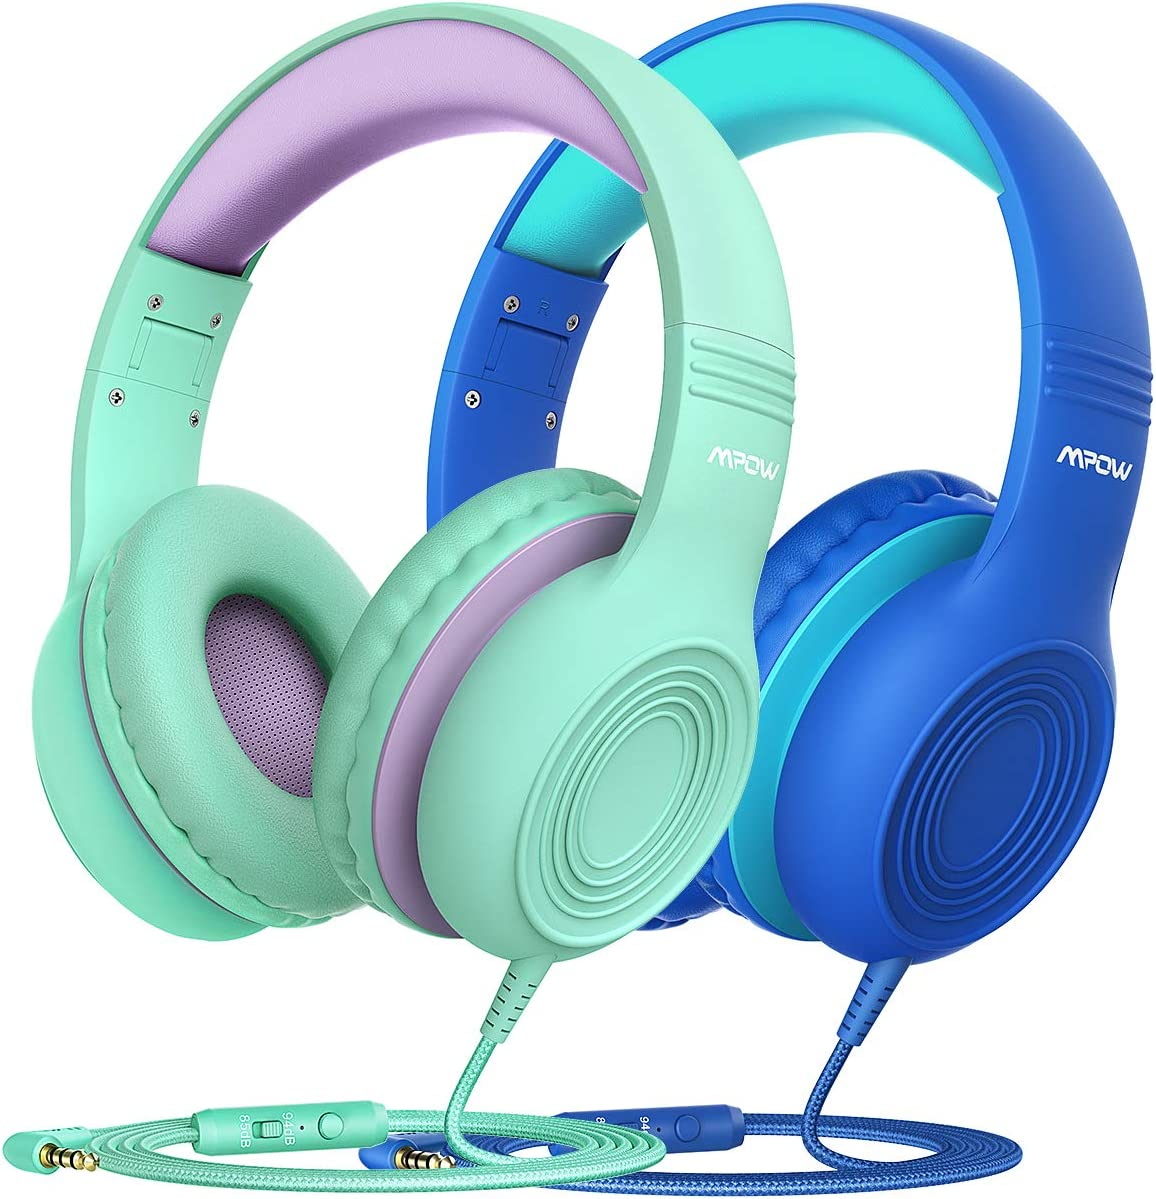 Mpow CH6 2 Pack Kids Headphones with Safety 85dB Volume Limited, Wired On-Ear Headsets for Kids, Food Grade Silicone, Lightweight, Comfortable Children Headphones for School